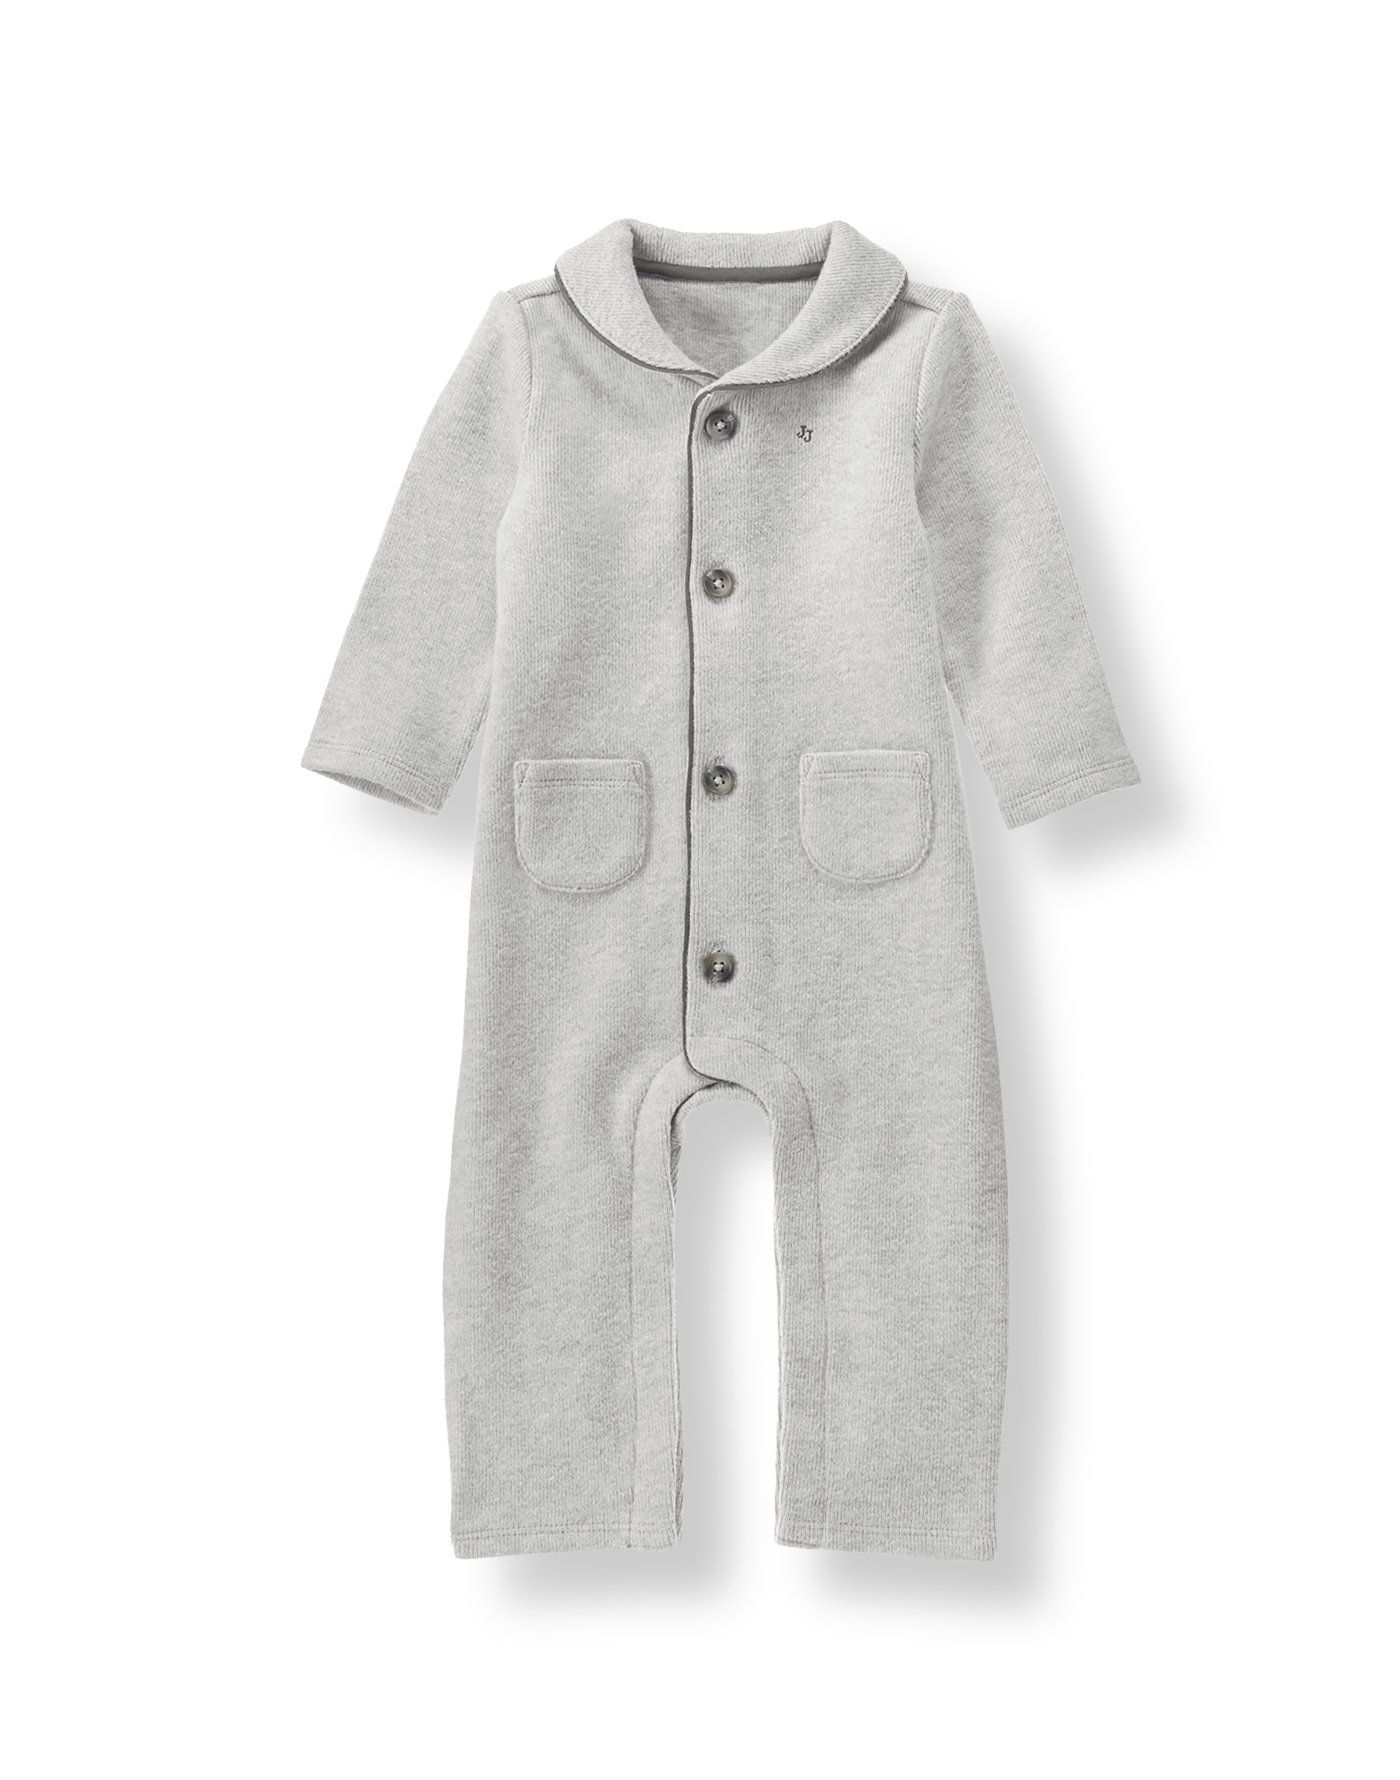 Our exceptionally soft sueded cotton one-piece makes the perfect first gift. Charming design features a shawl collar, front pockets and piping.